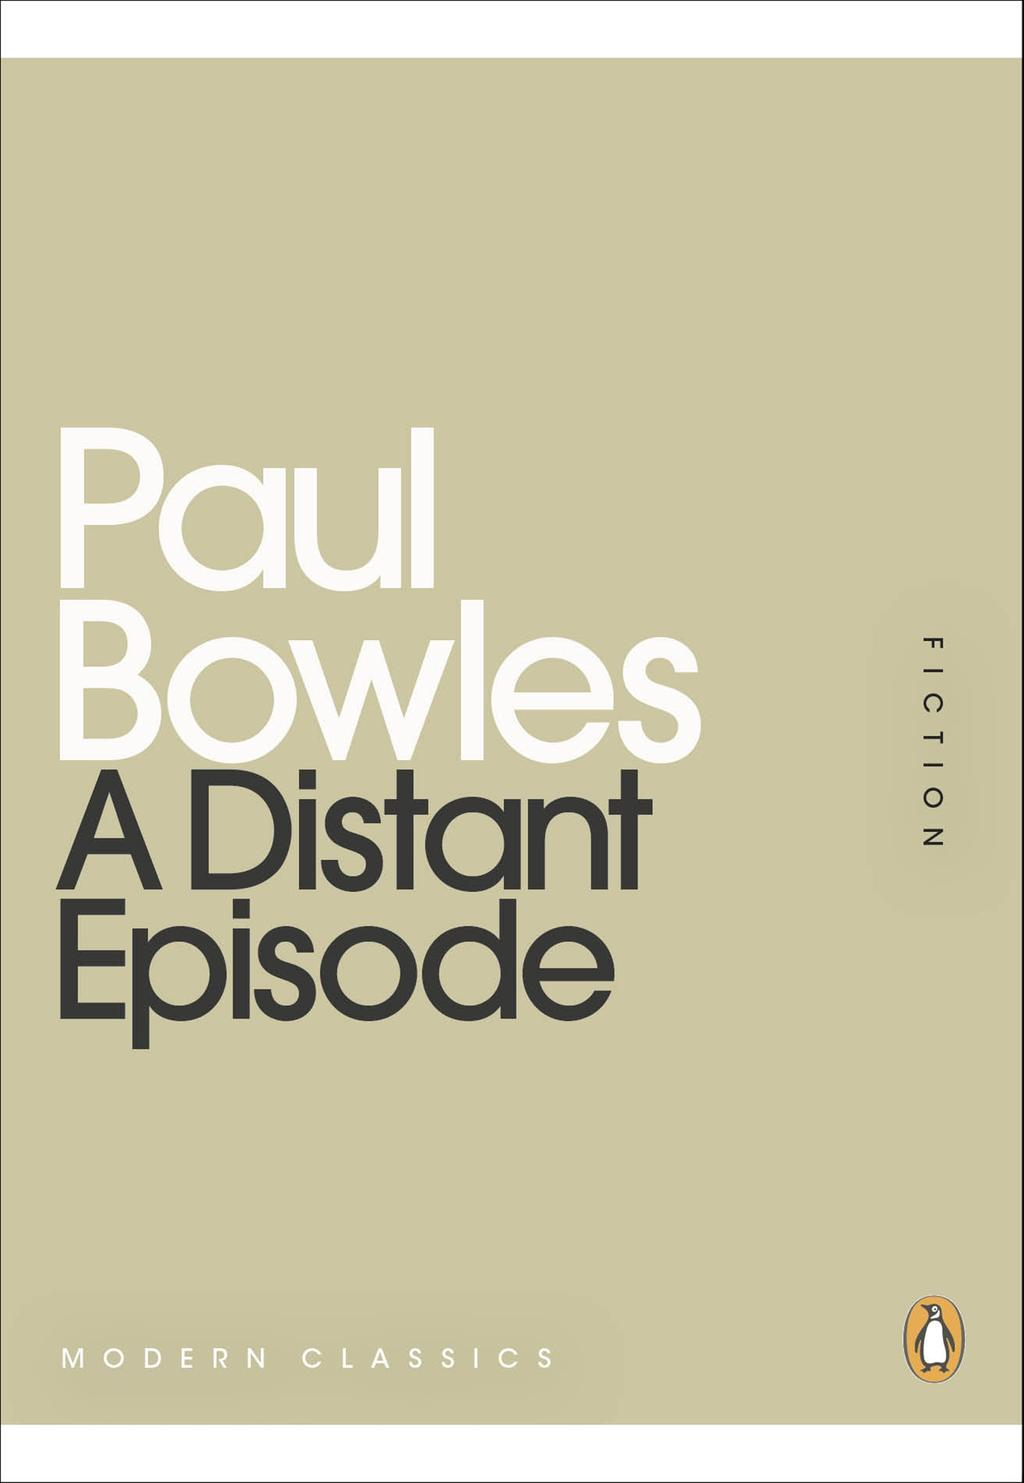 a distant episode by paul bowles Provided to youtube by the orchard enterprises a distant episode paul bowles baptism of solitude ℗ 2010 metastation released on: 2010-10-29 auto-generated by youtube.